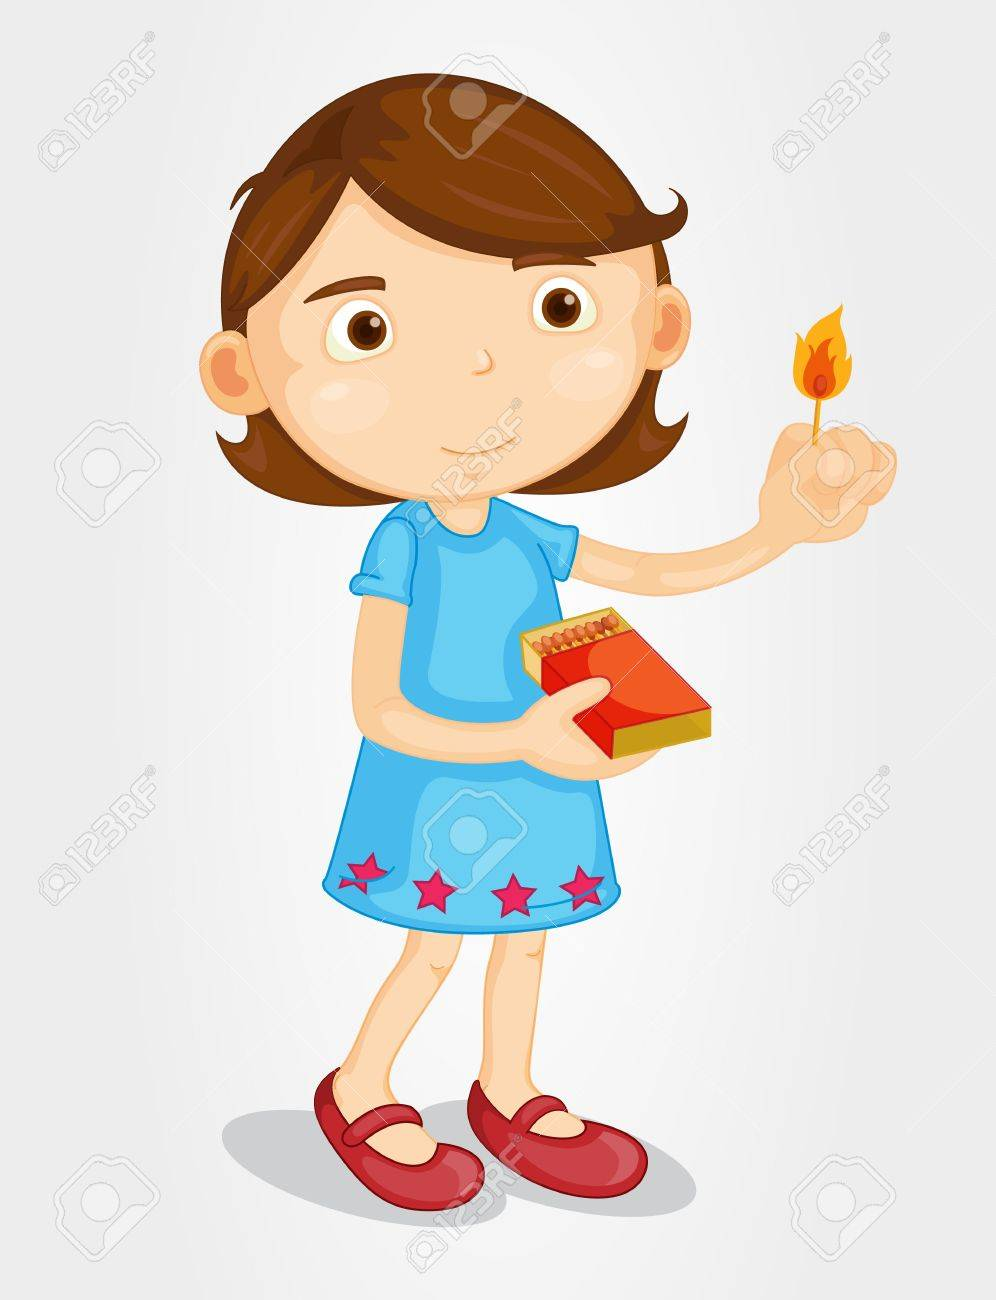 996x1300 Illustration Of A Girl With Matches Royalty Free Cliparts, Vectors